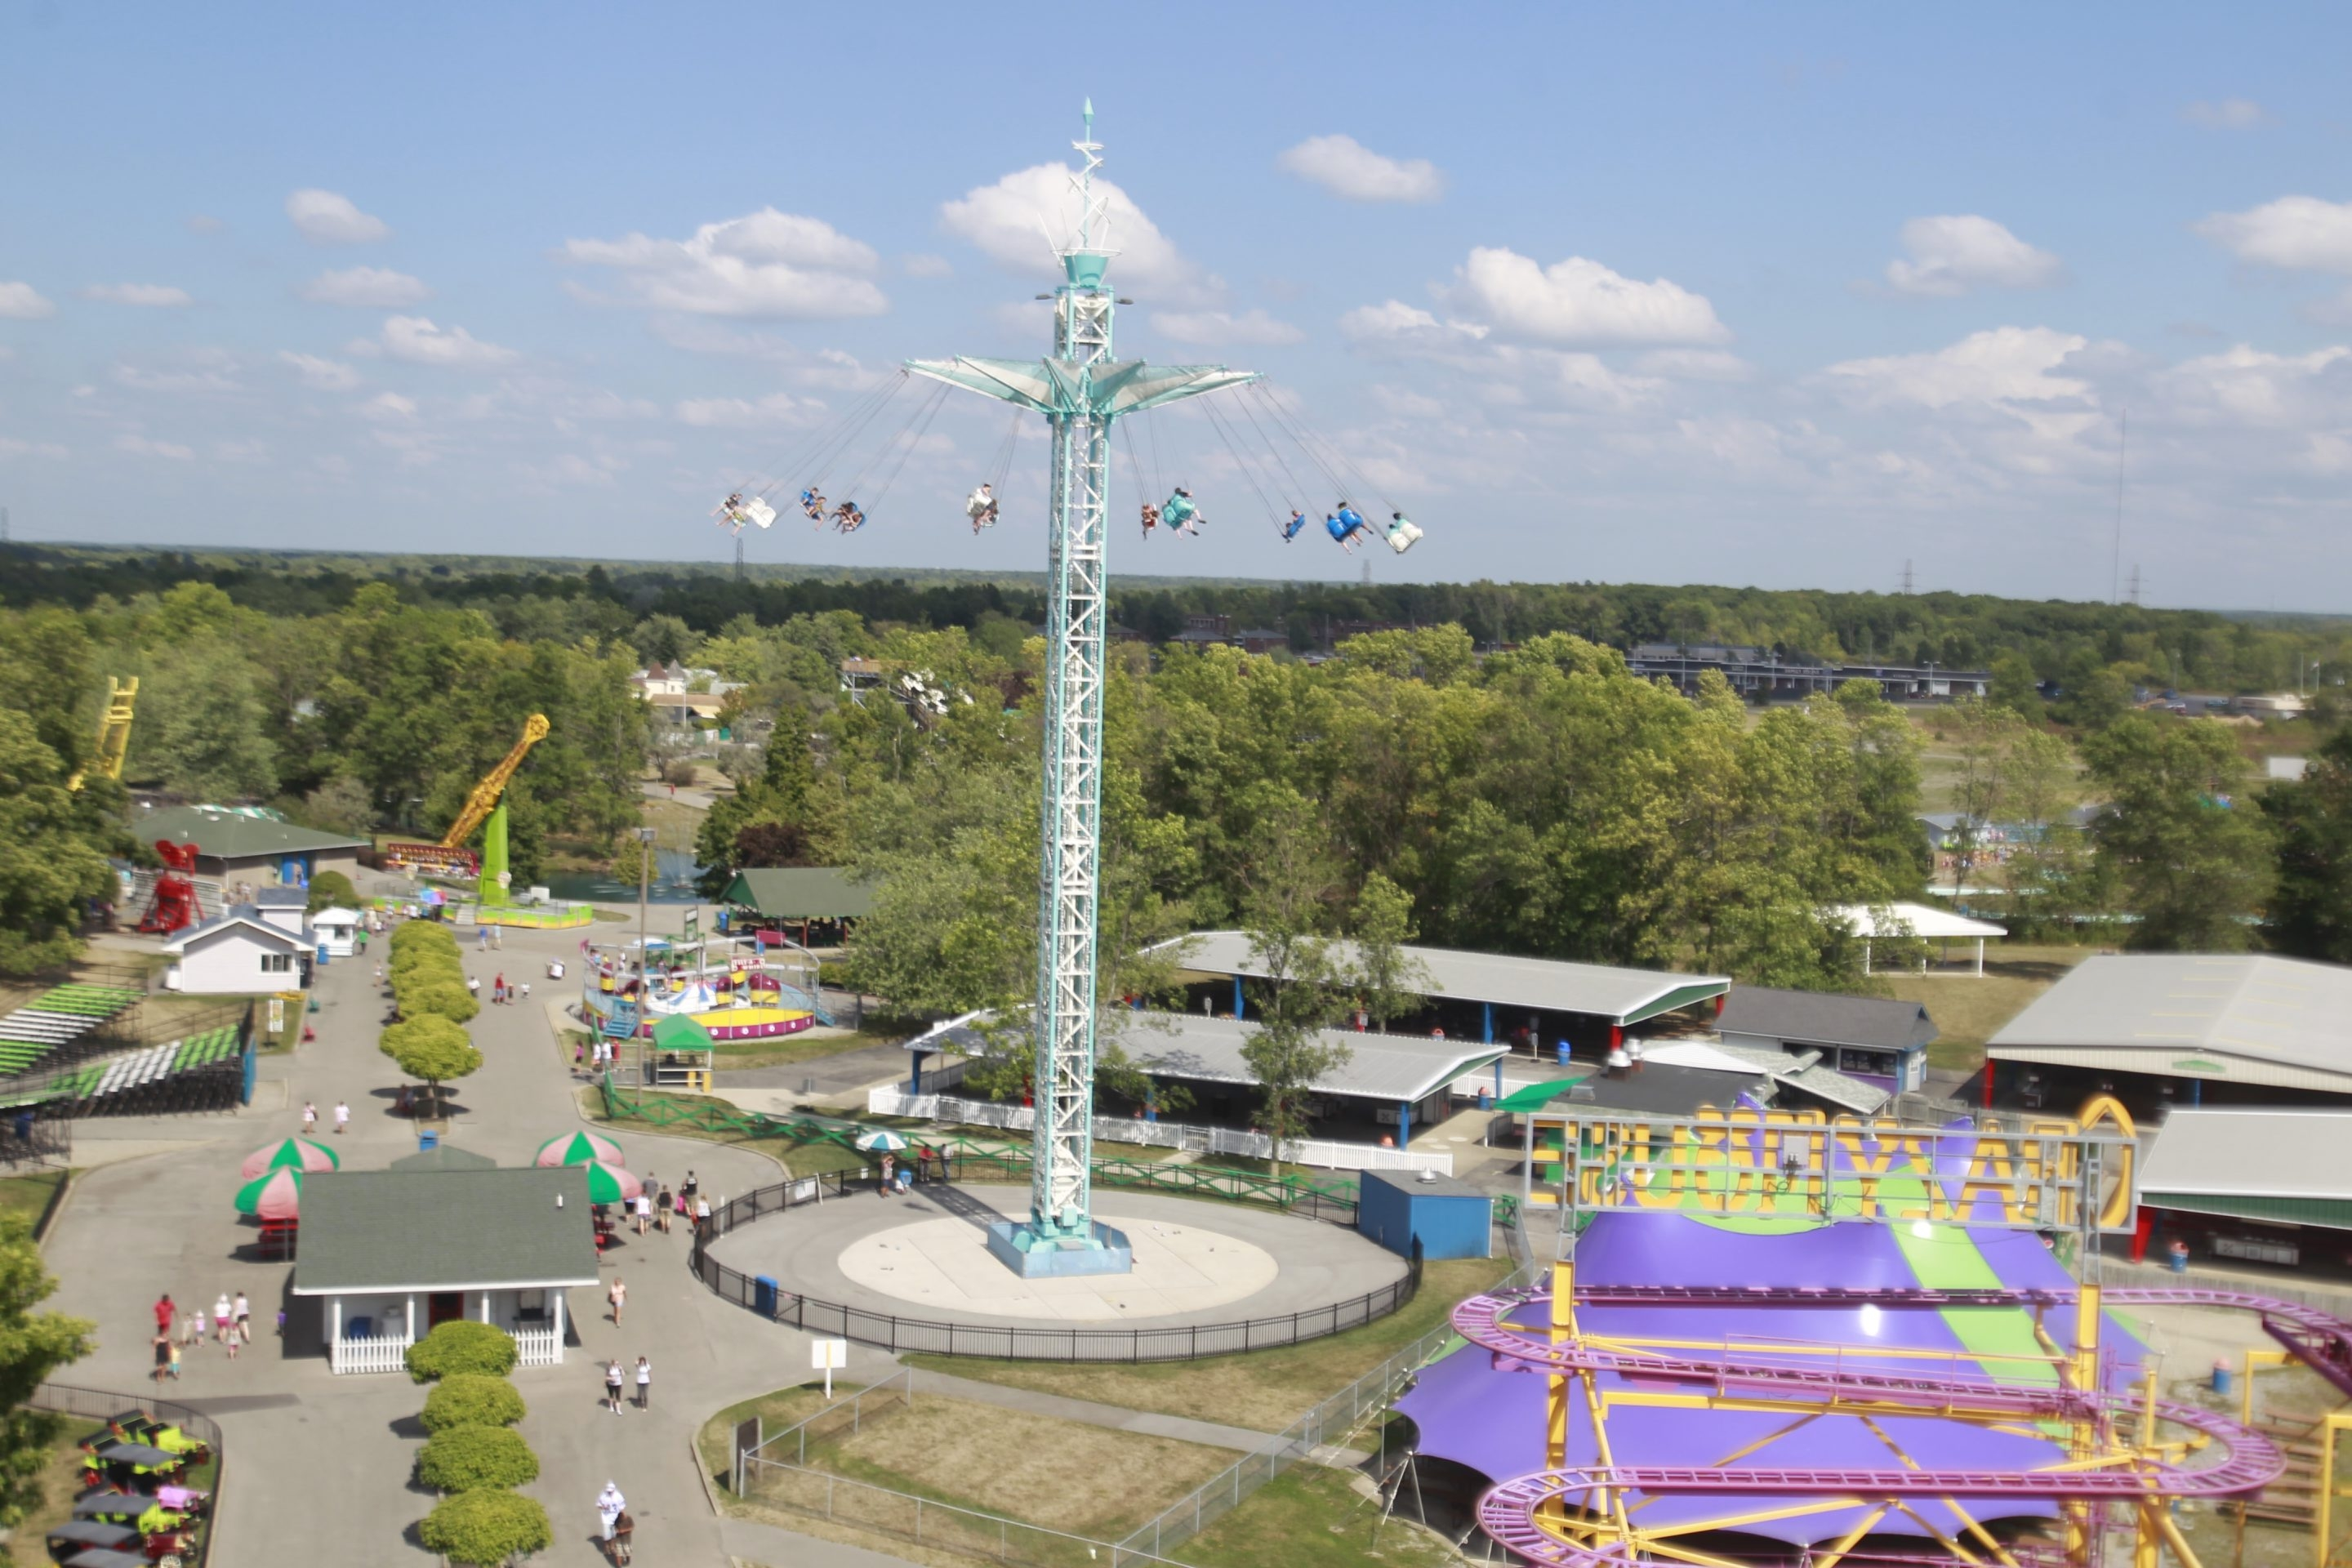 Martin DiPietro, who bought Fantasy Island 22 years ago, said a sale to Apex was the best way of ensuring the future success of the park. (John Hickey/News file photo)